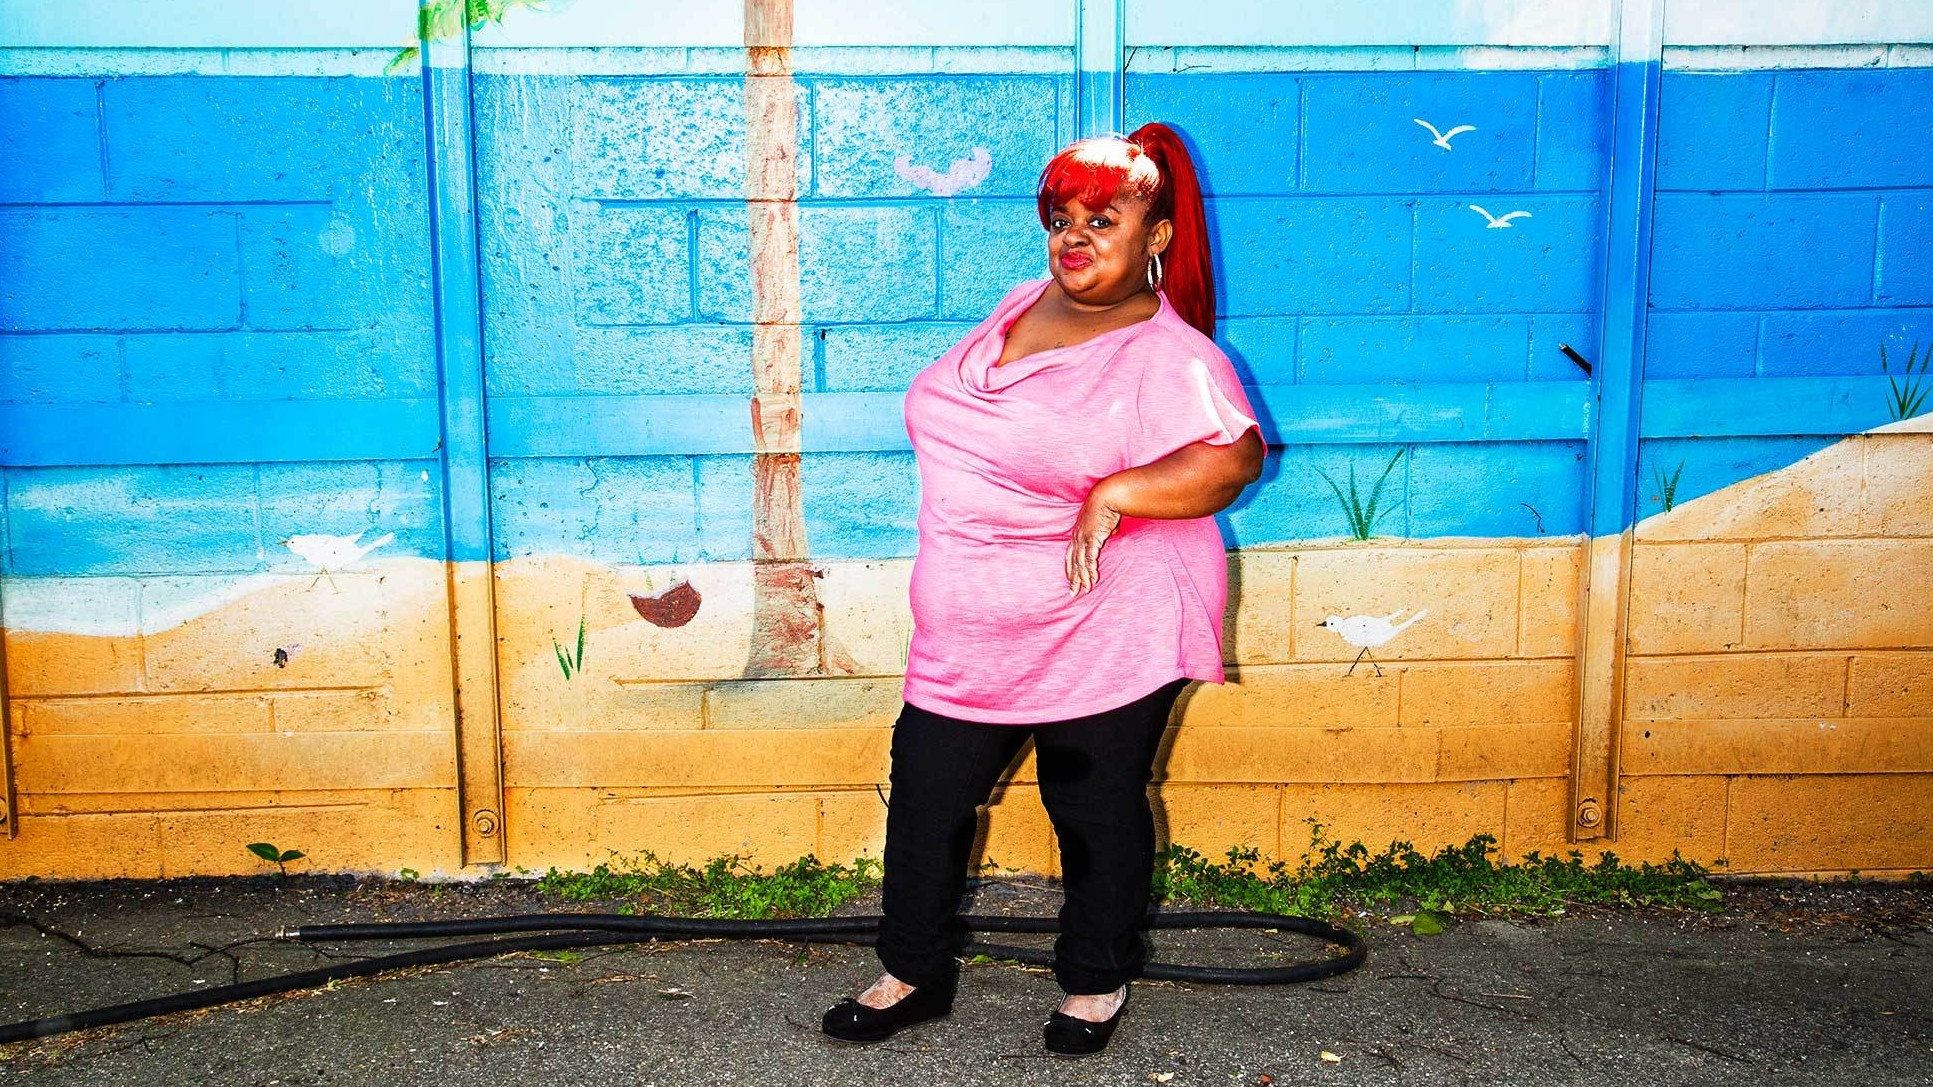 The Little Woman Who Could: How Ms. Juicy Became the Queen of Atlanta